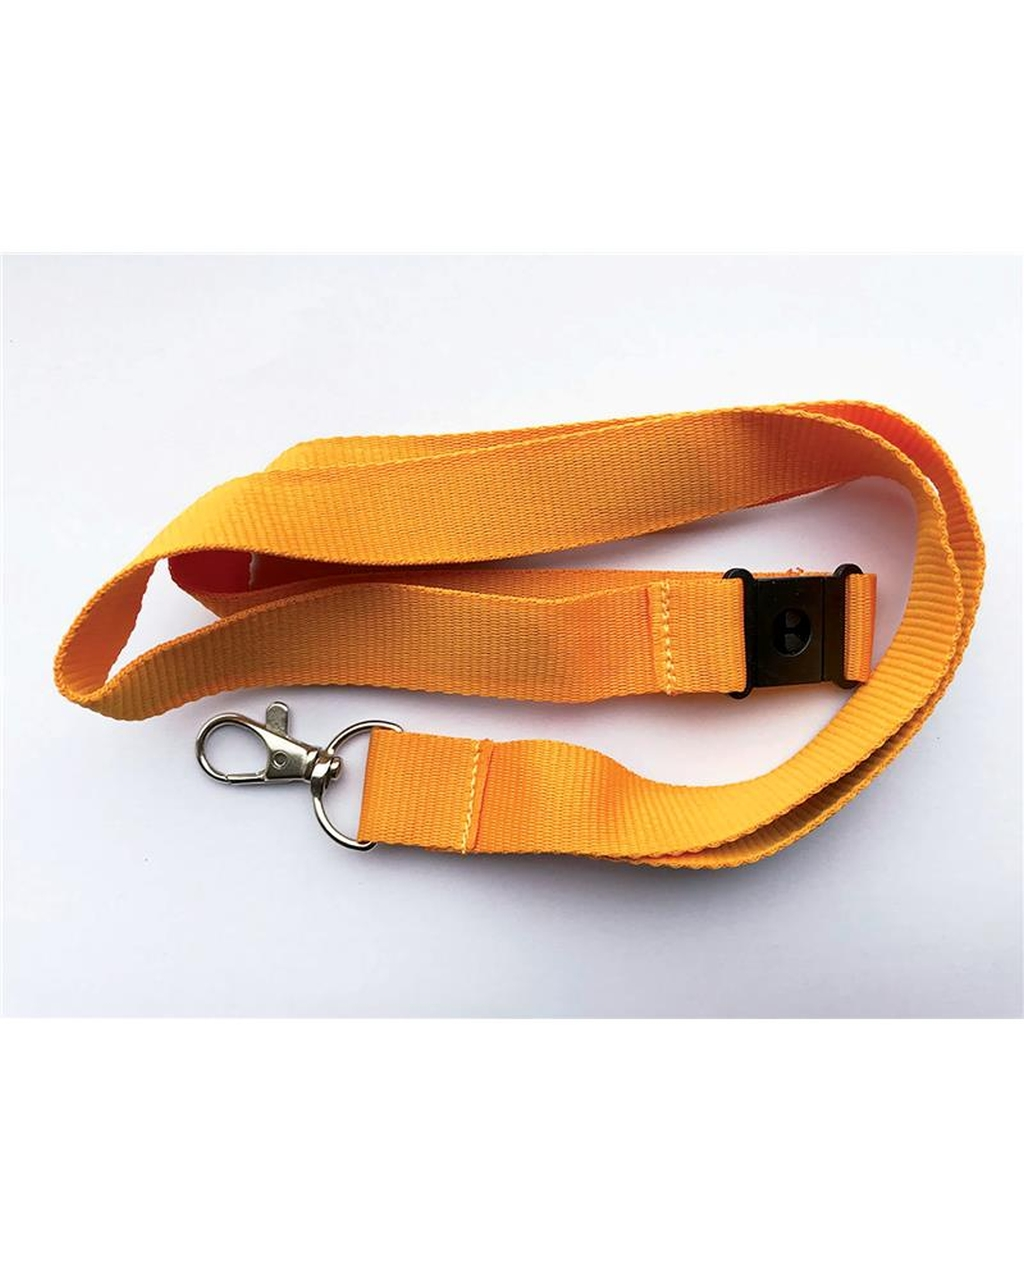 20Mm Lanyards Plain Orangepack Of 10